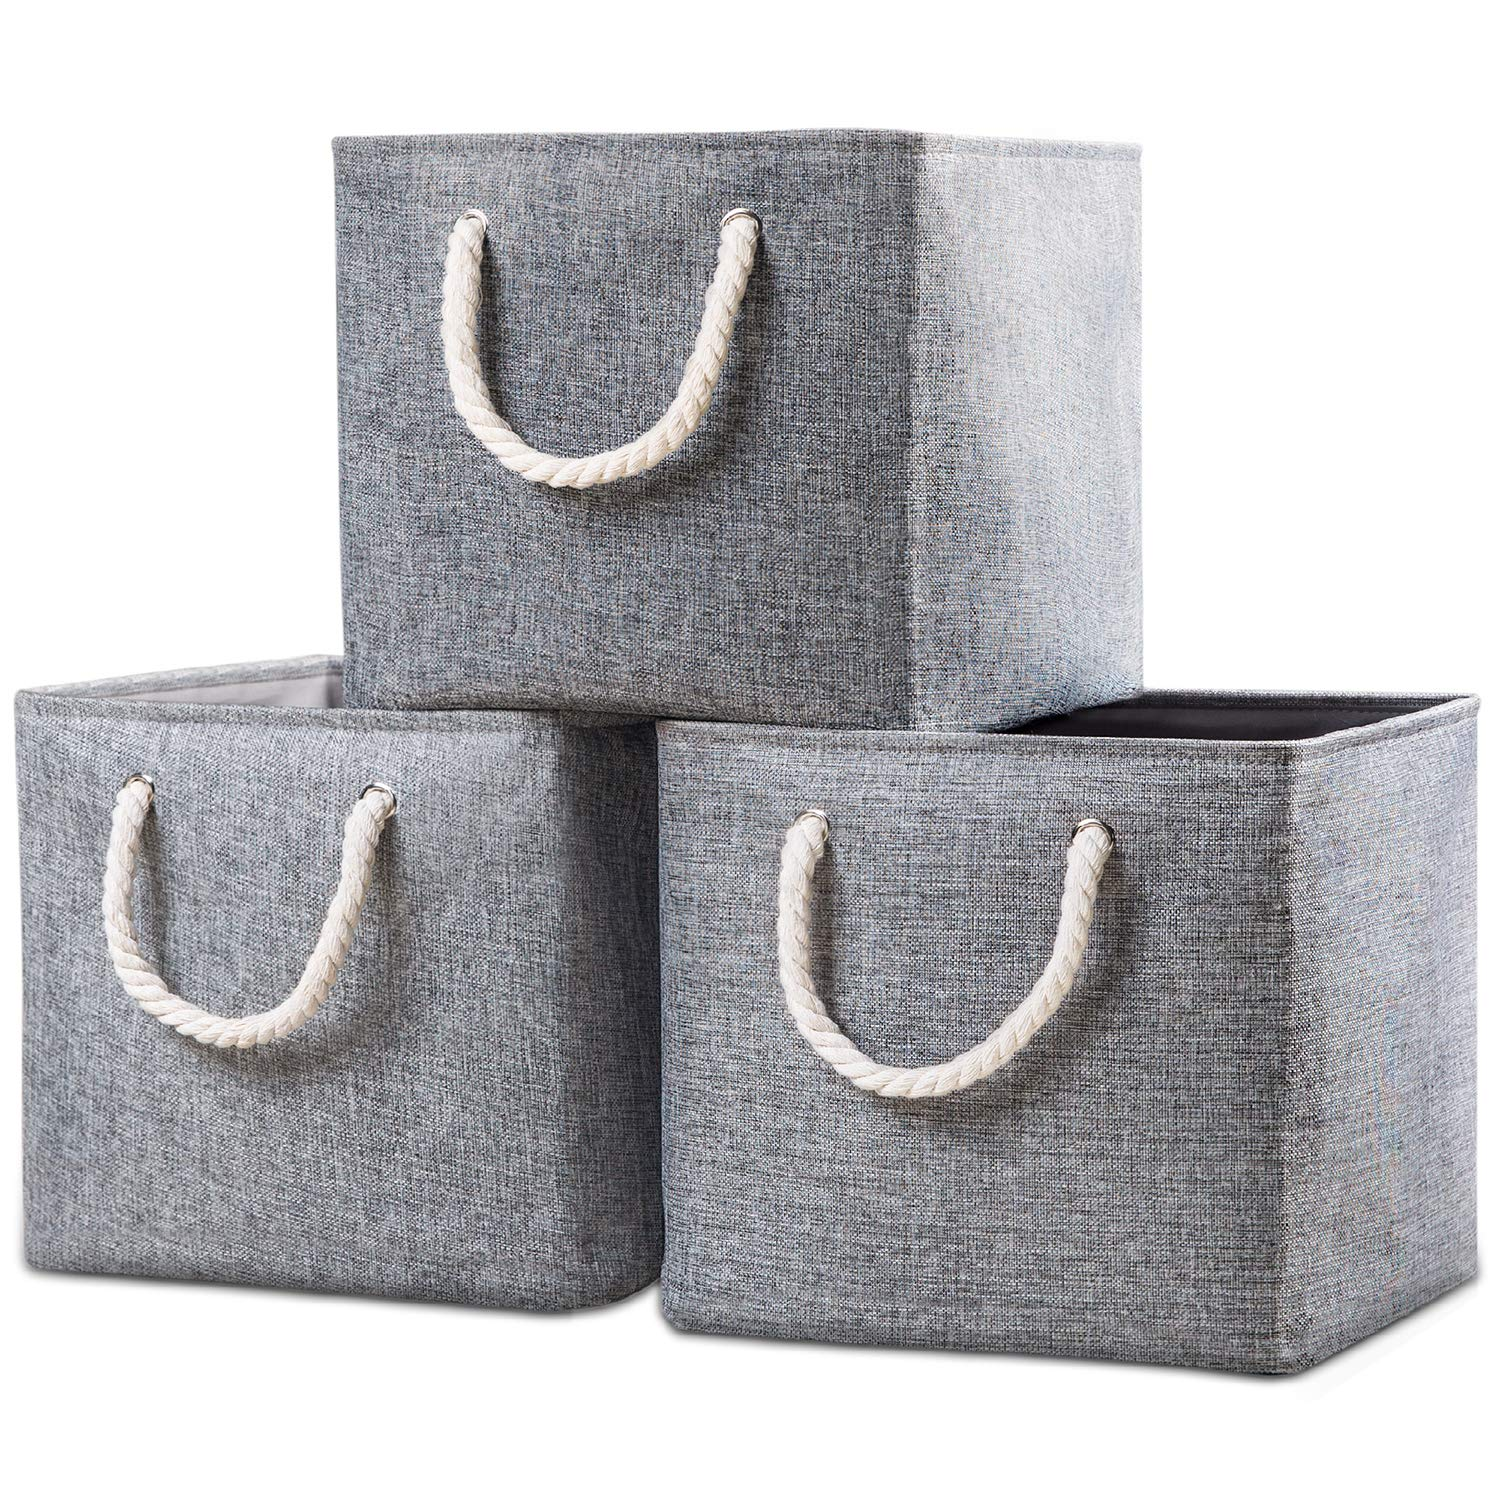 Prandom Large Foldable Cube Storage Baskets Bins 13x13 inch [3-Pack] Fabric Linen Collapsible Storage Bins Cubes Drawer with Cotton Handles Organizer for Shelf Toy Nursery Closet Bedroom(Gray) by Prandom